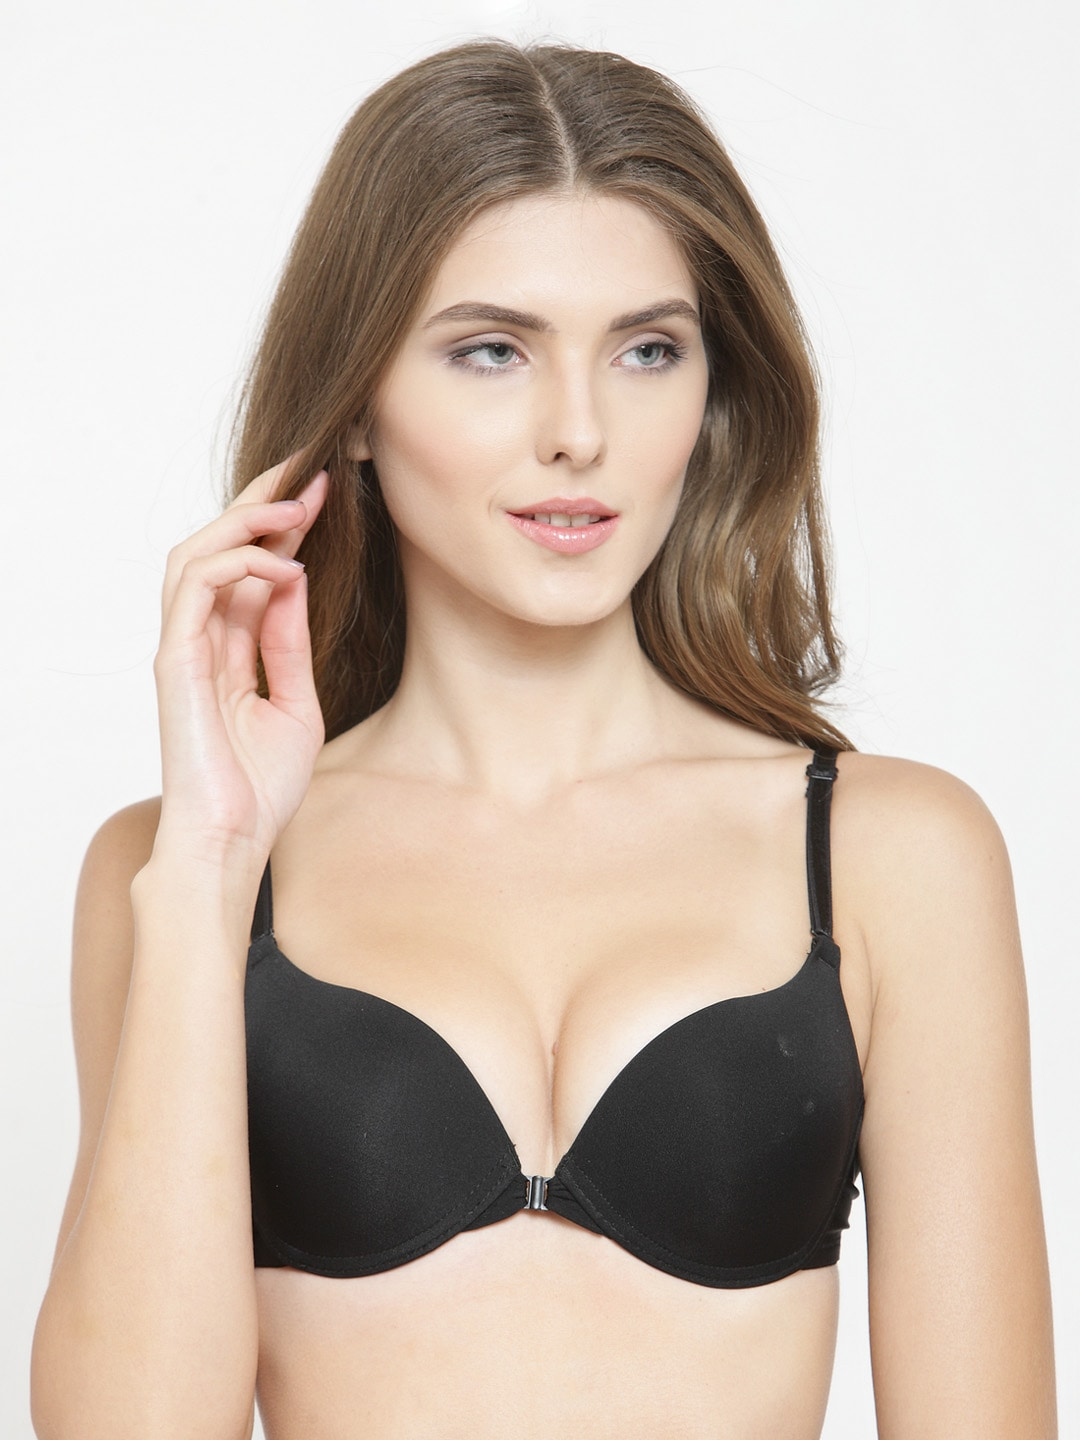 c236b2ef5 Front Closure Bra - Buy Front Closure Bras Online in India